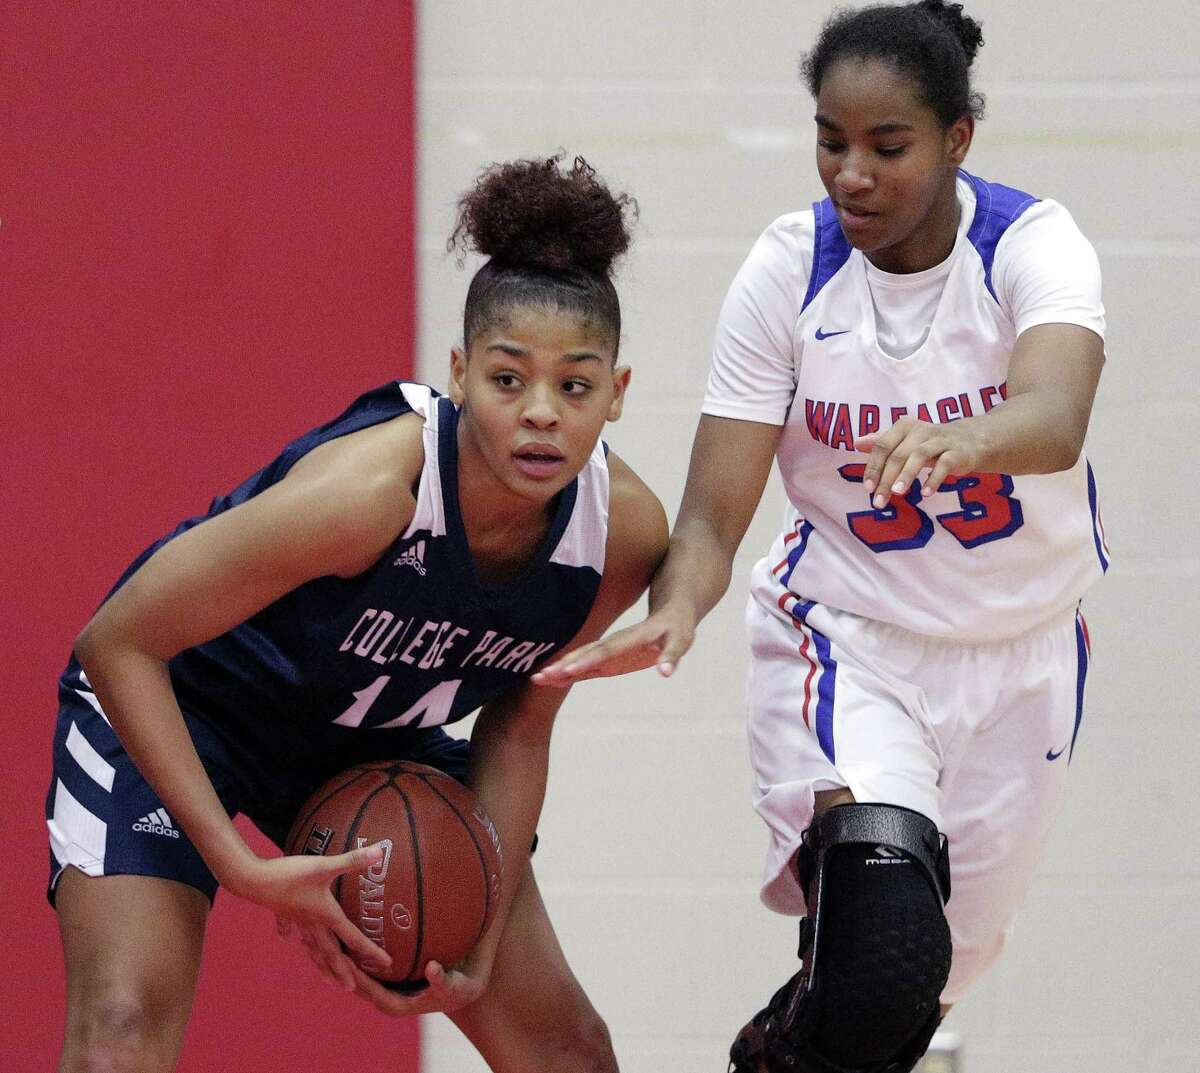 College Park's Sandra Cannady (14) protects the ball from the attempted steal by Oak Ridge North's Chelsea Cogborn (33) during the second half of their game at Oak Ridge North High School Friday, Dec. 14, 2018 in Oak Ridge North, TX.